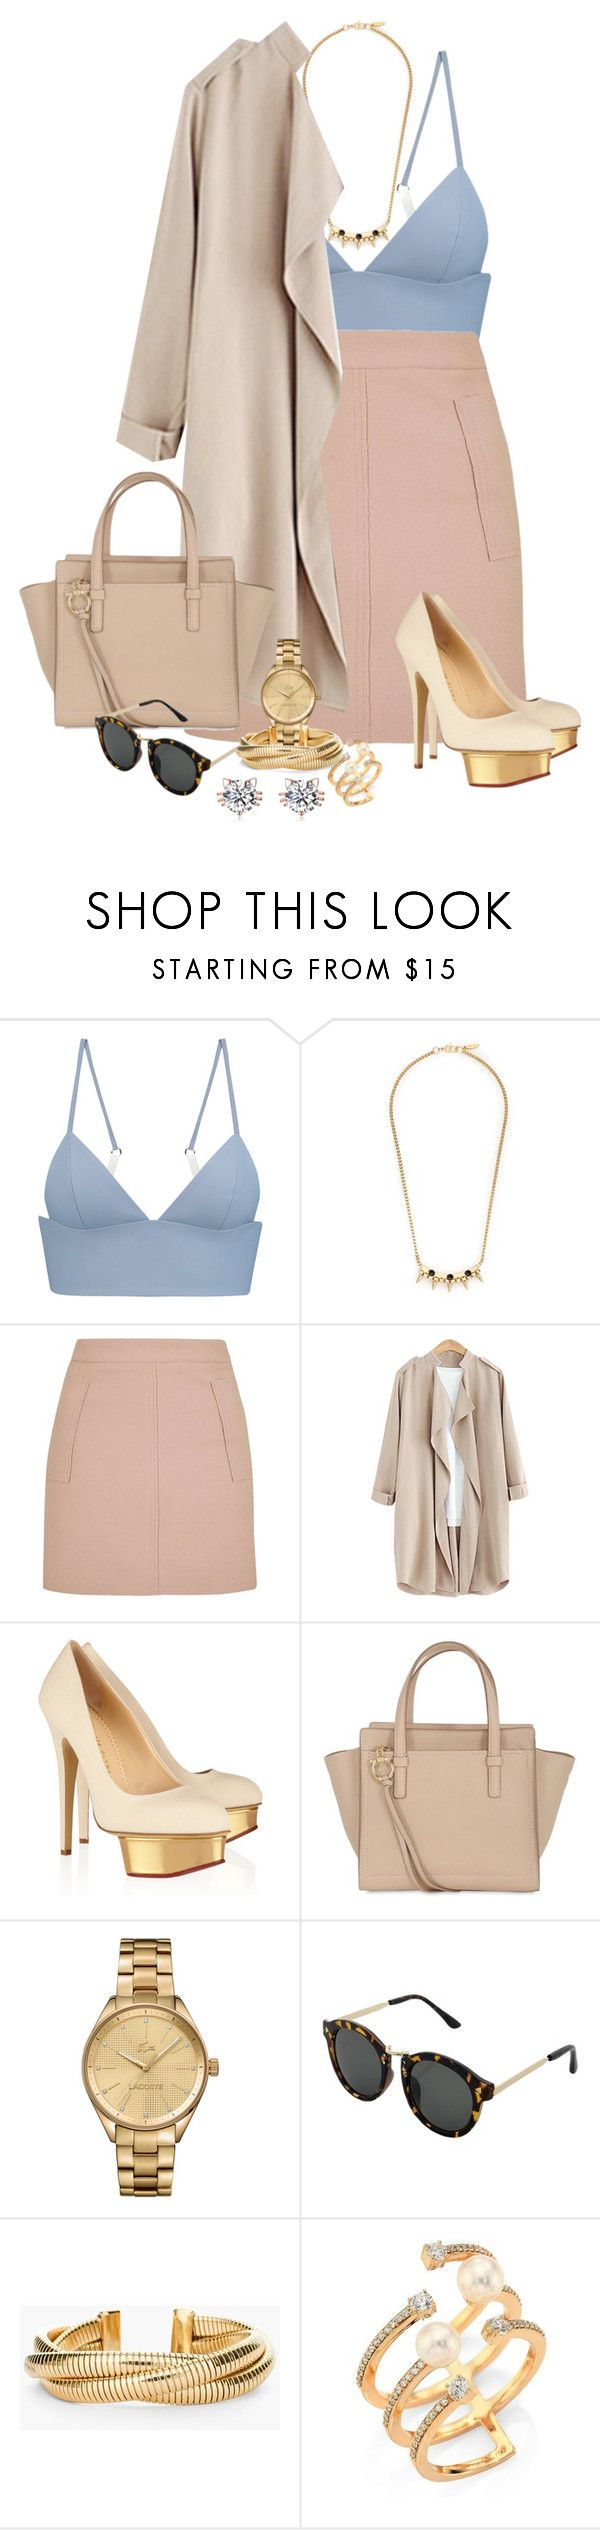 """Untitled #1361"" by ally-624 ❤ liked on Polyvore featuring T By Alexander Wang, Joomi Lim, Topshop, Lela Rose, Salvatore Ferragamo, Lacoste, Chico's and Hueb"